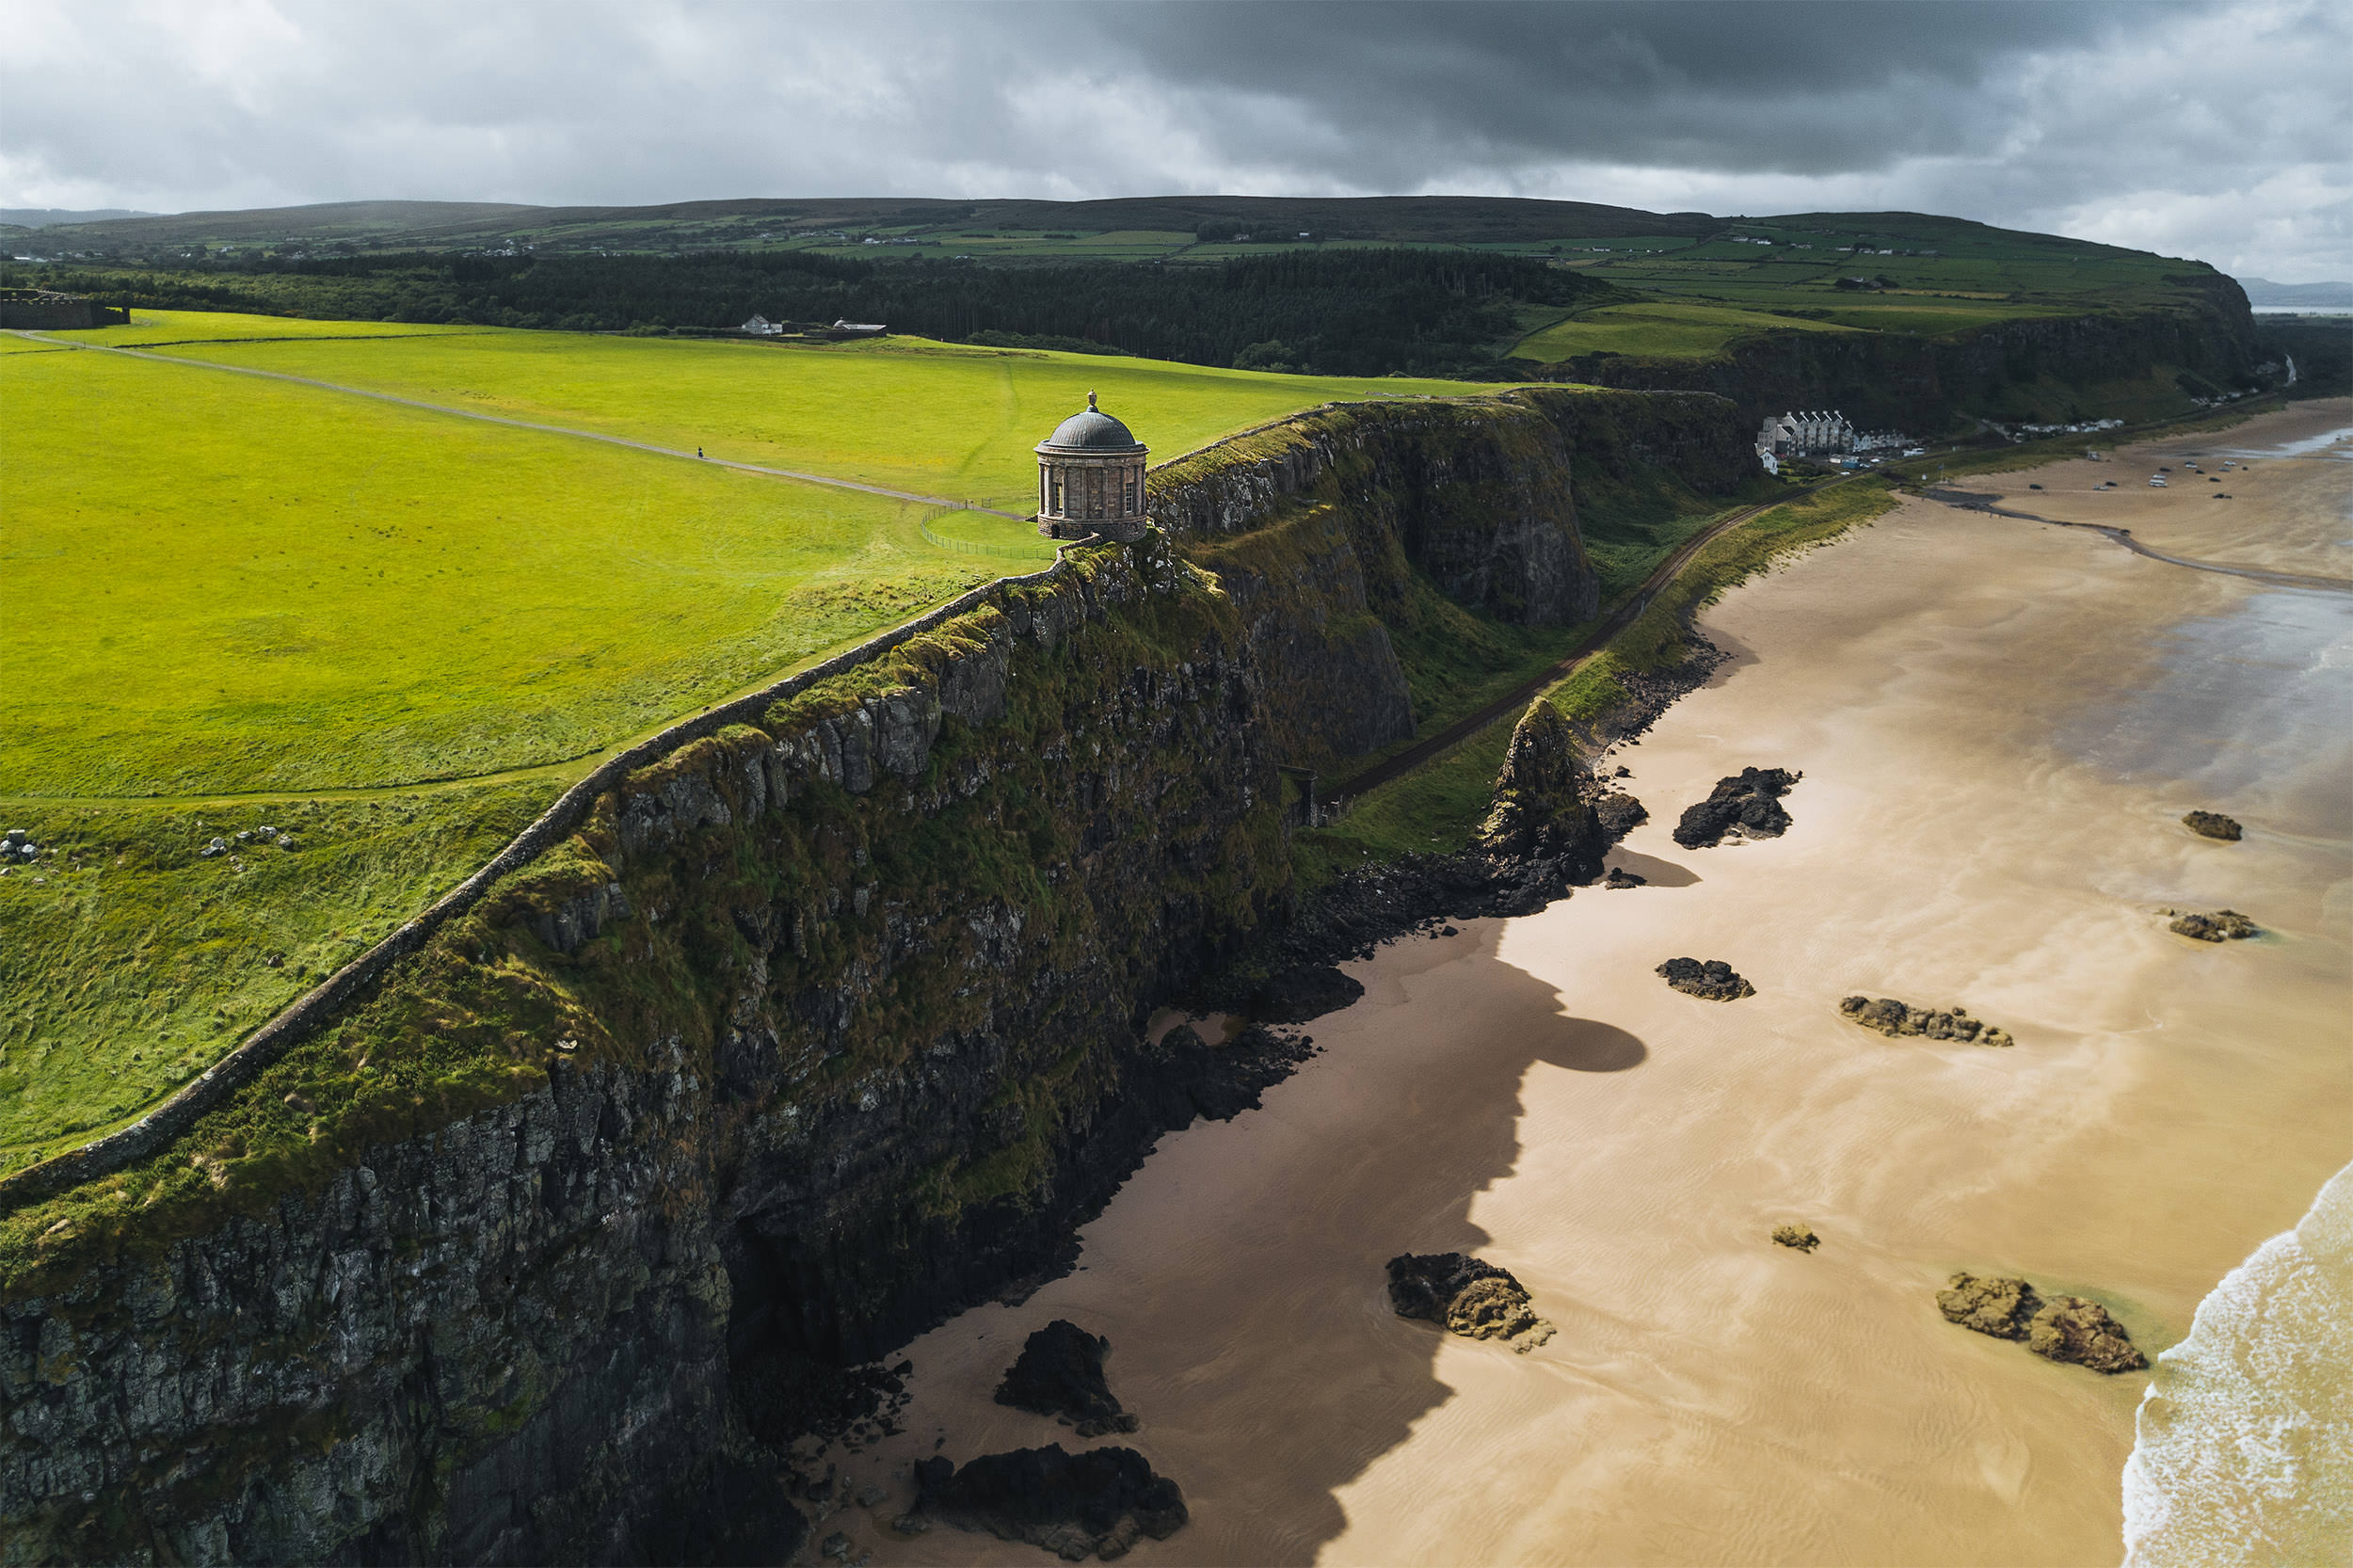 01-travel-northern-ireland-county-antrim-benone-beach-drone.jpg